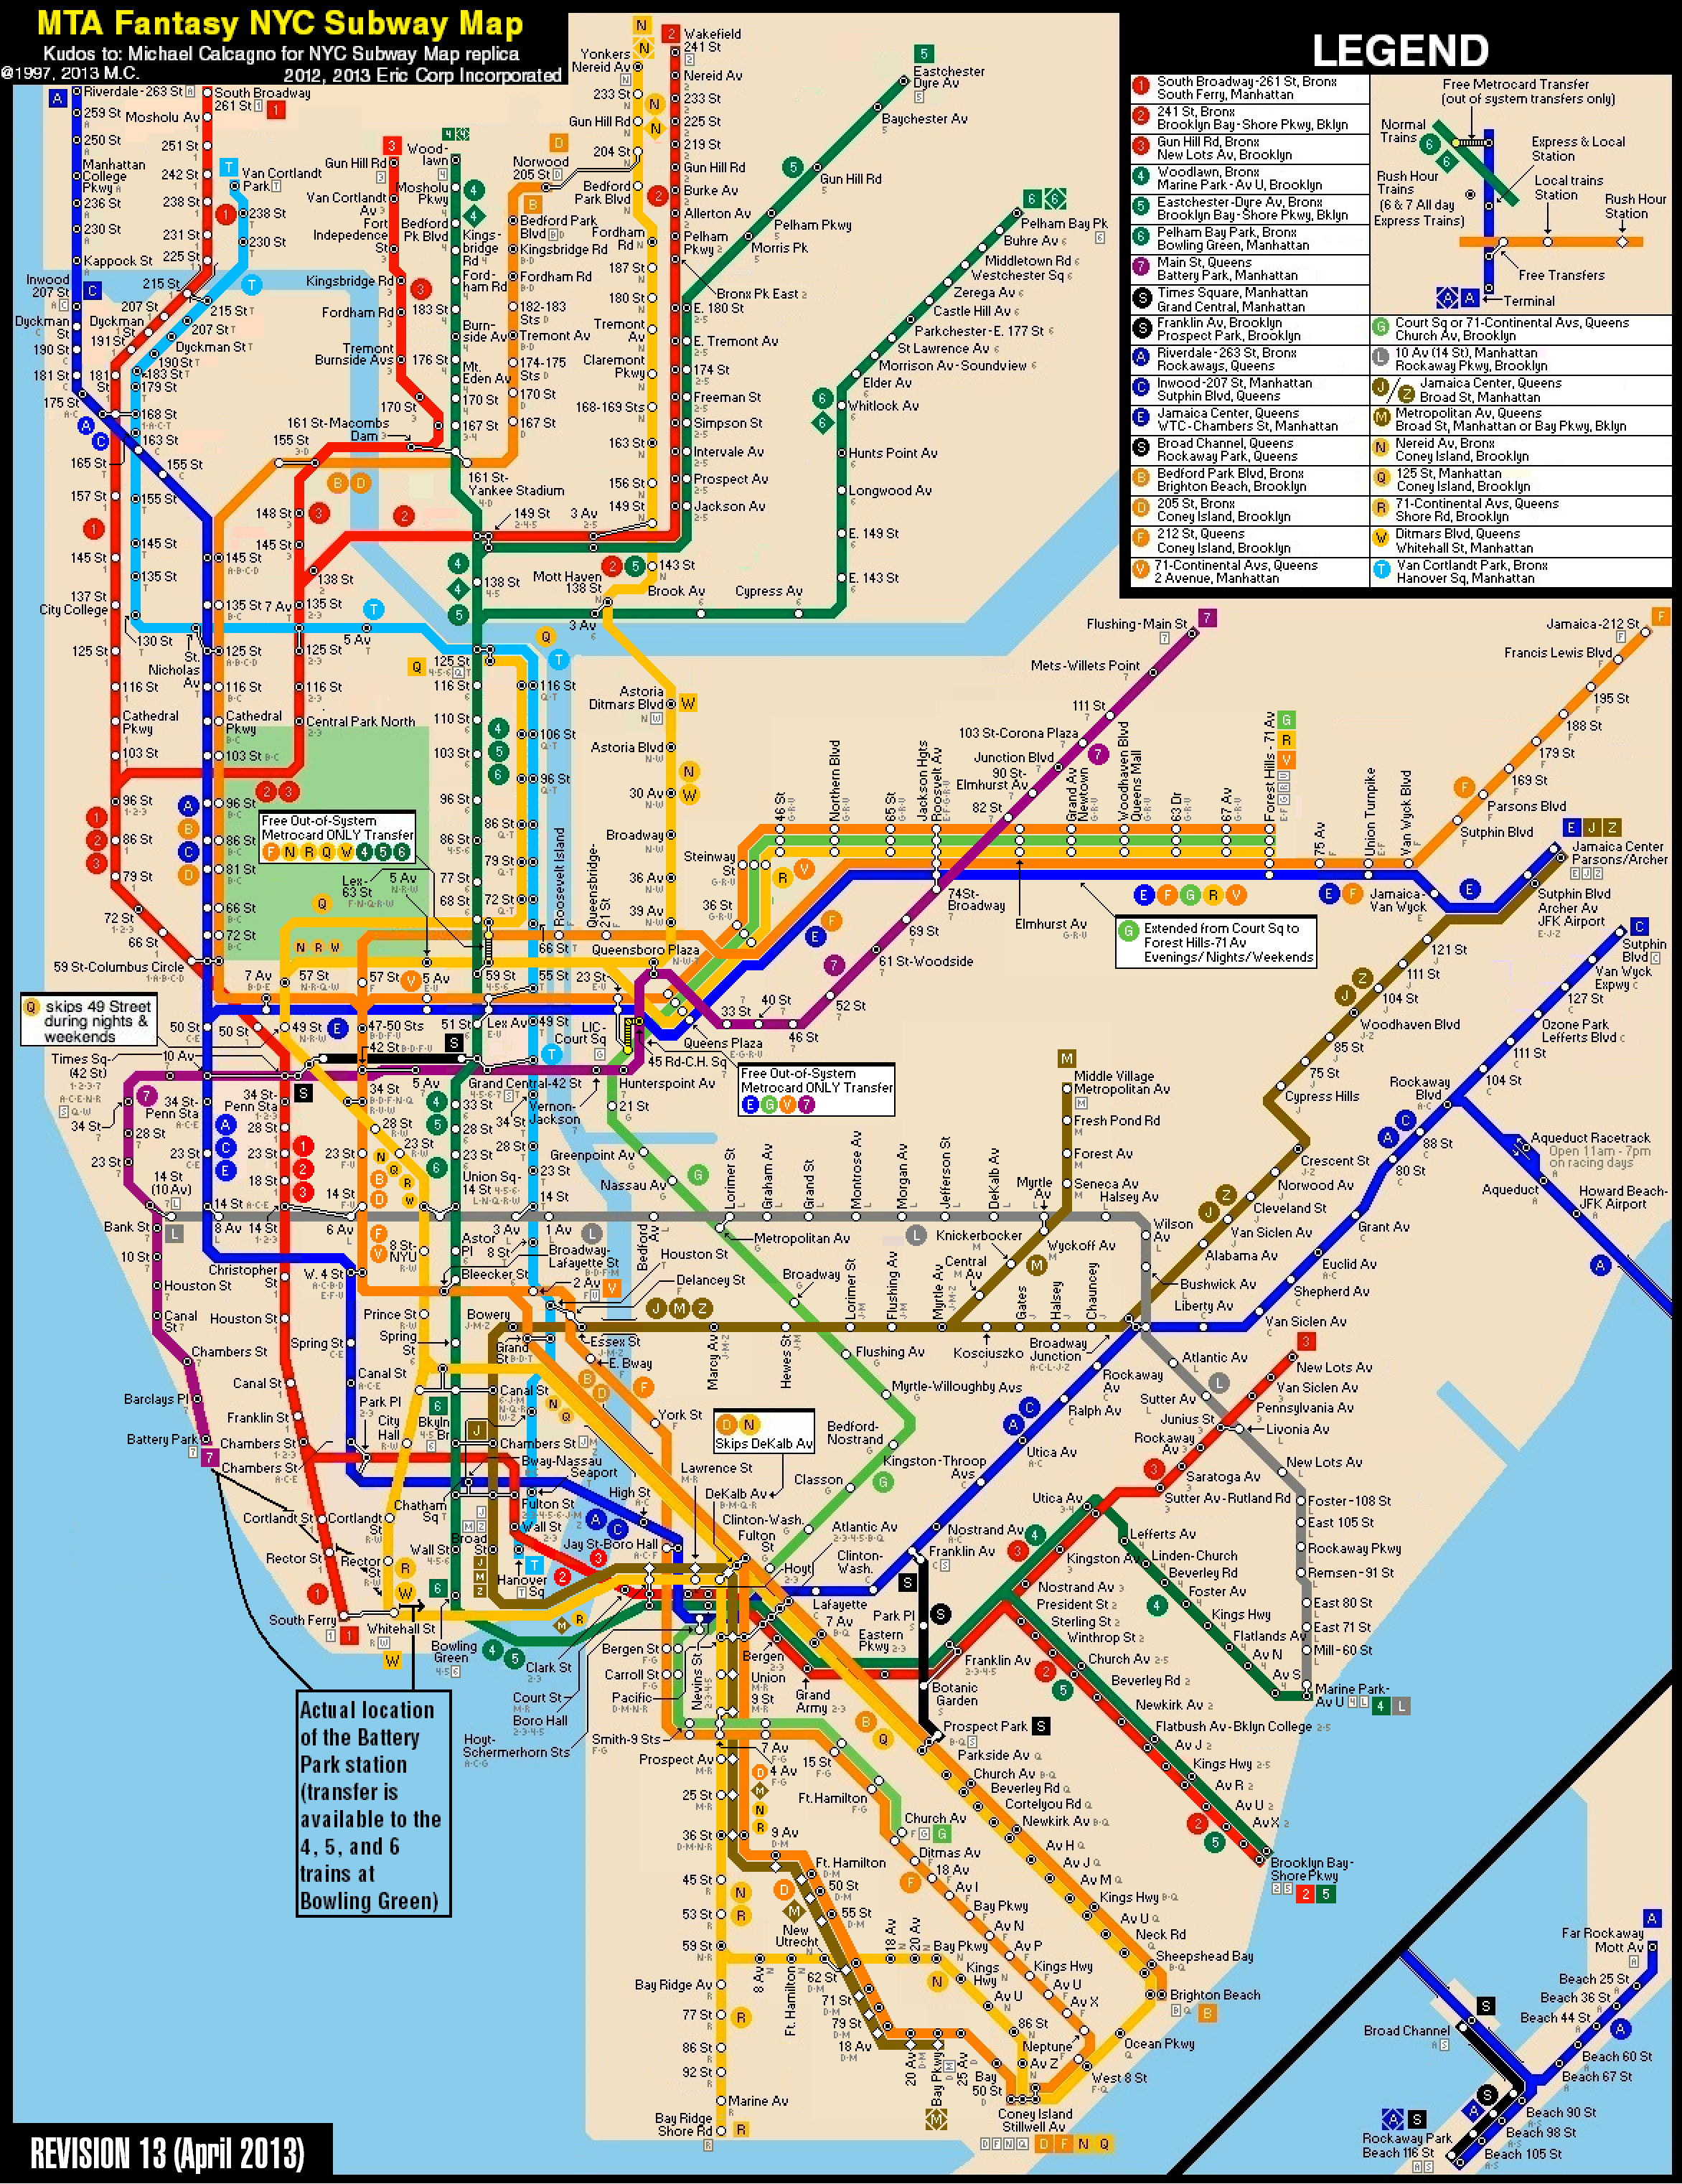 Subway Map For New York City.New York Subway Map New York City Subway Fantasy Map Revision 13